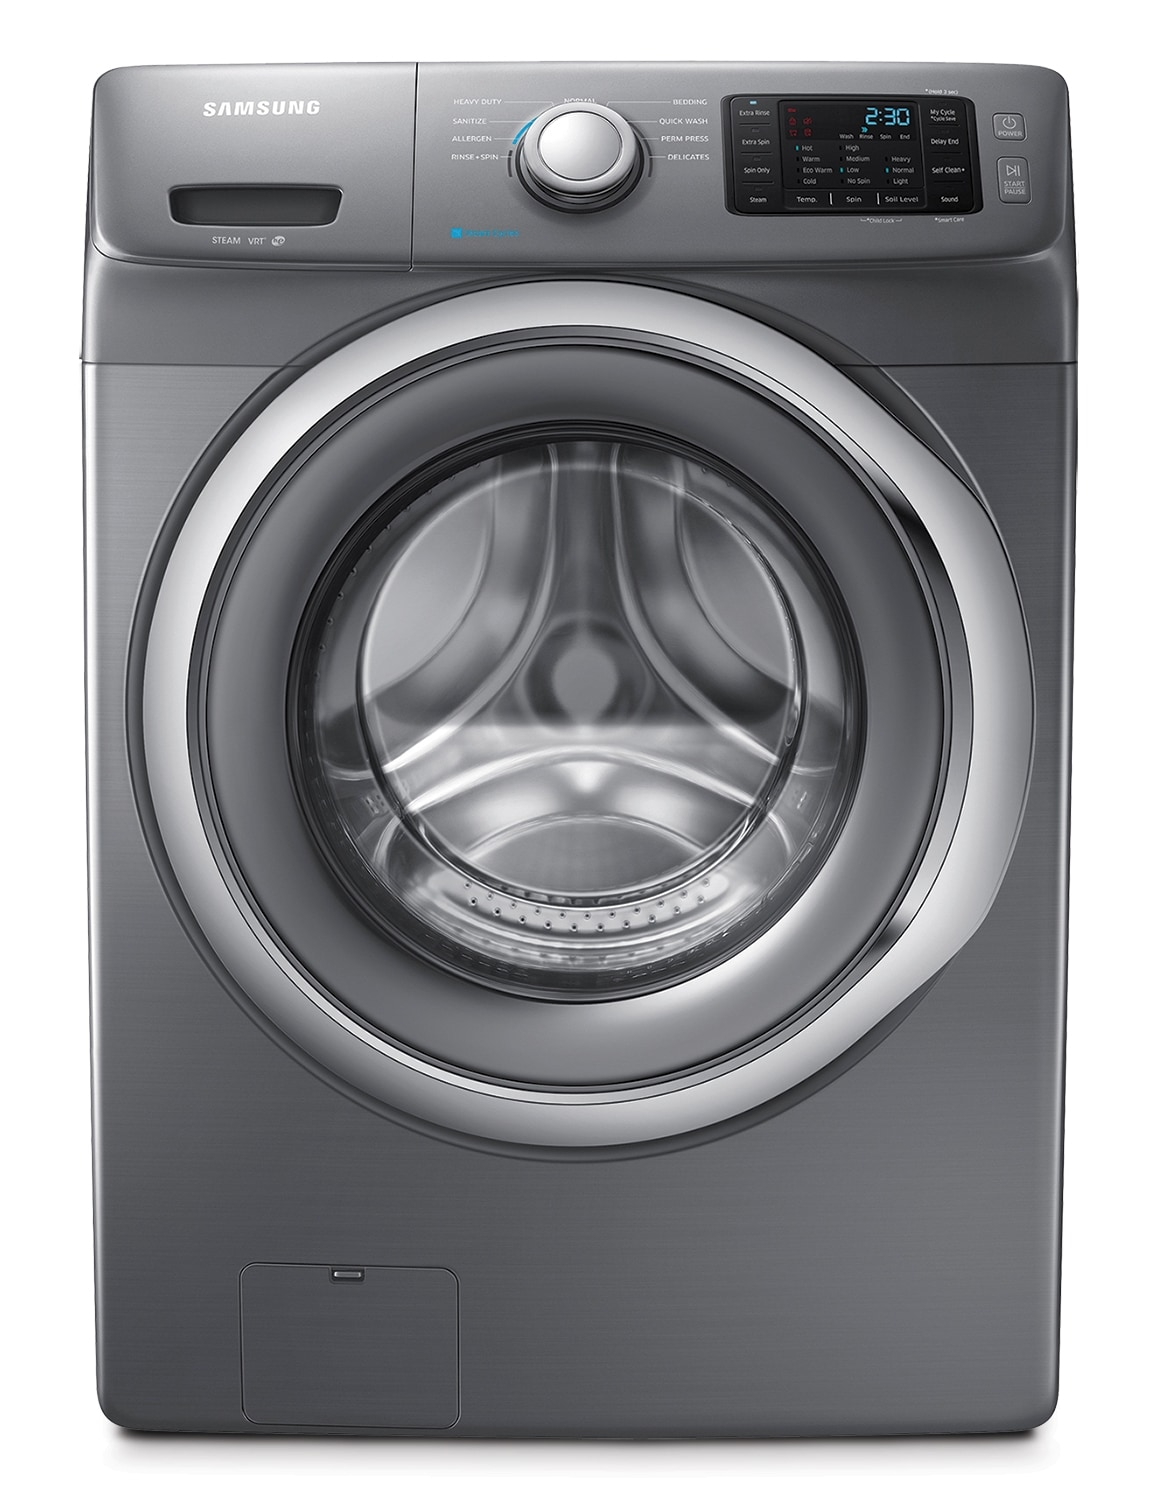 Samsung Stainless Platinum Front Load Washer (4.8 Cu. Ft. IEC) - WF42H5200AP